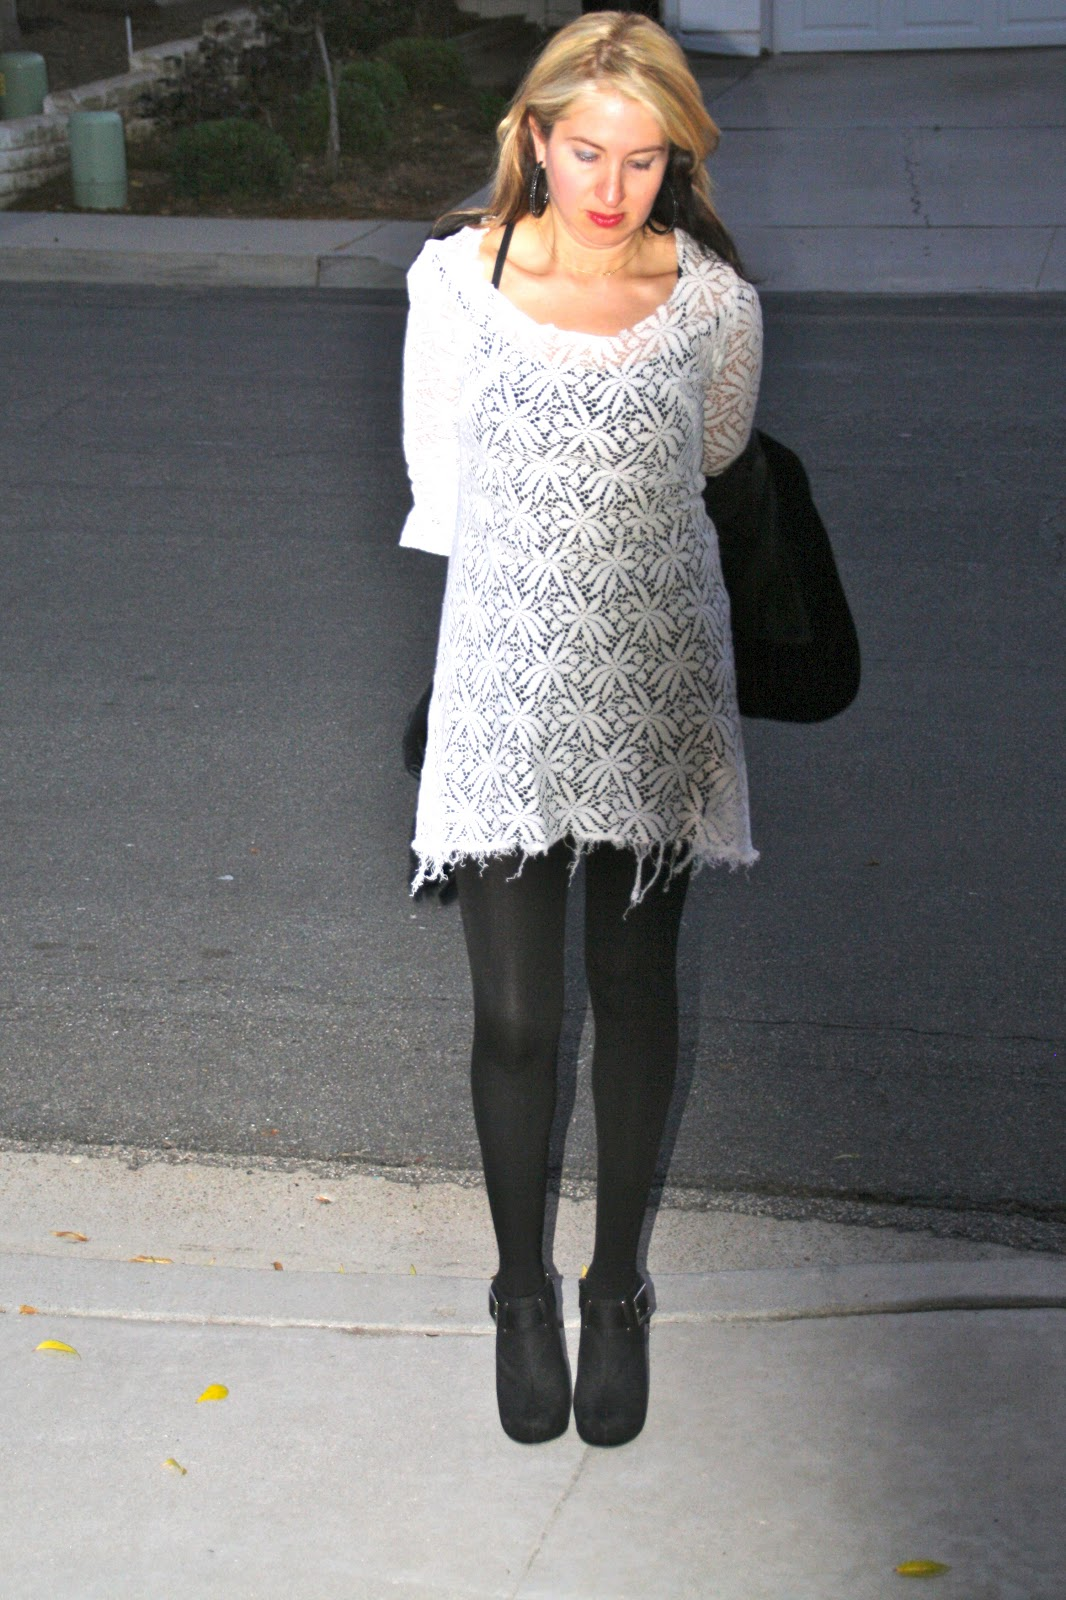 Find and save ideas about Dress with tights on Pinterest. | See more ideas about Outfits with tights, Neutral tights and Autumn style. Women's fashion. Dress with tights; Dress with tights Leggings, Knee High Socks, Lace Up Boots, Floral Dress, Olive Green Cardigan and Scarf. I want the lace .